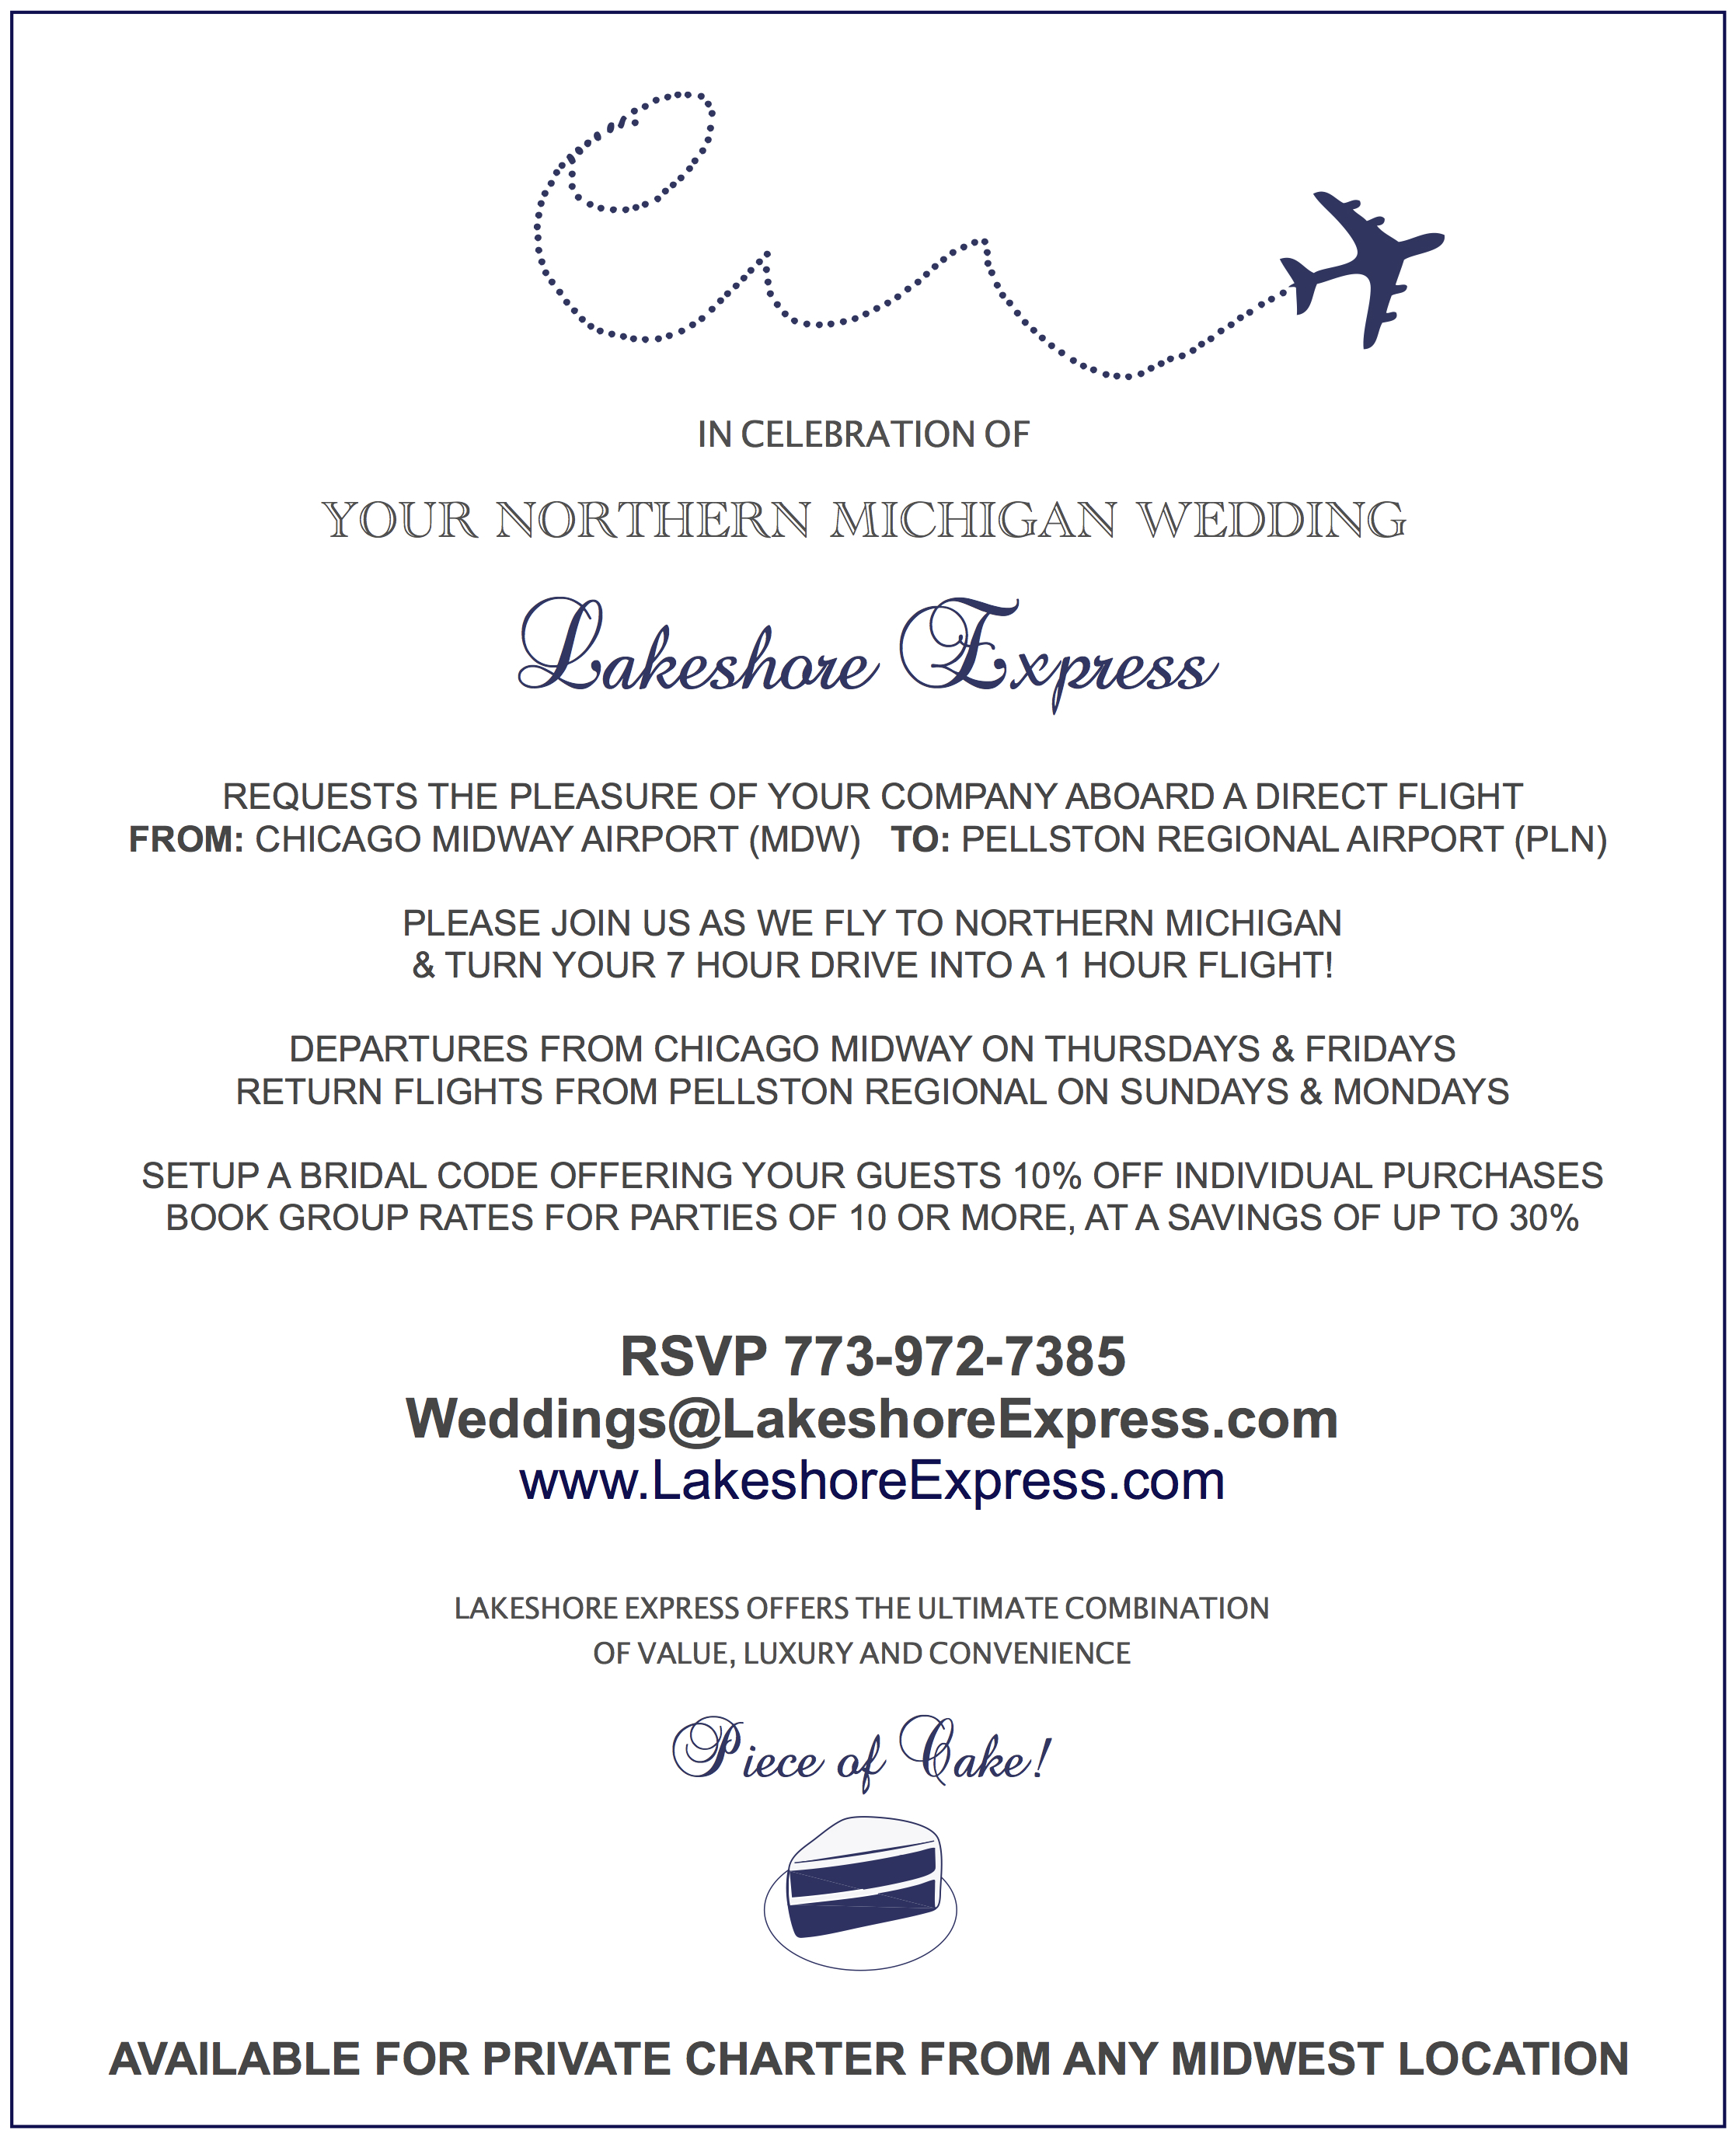 Email Wedding Invites: Make Traveling To Your Northern Michigan Wedding A Piece